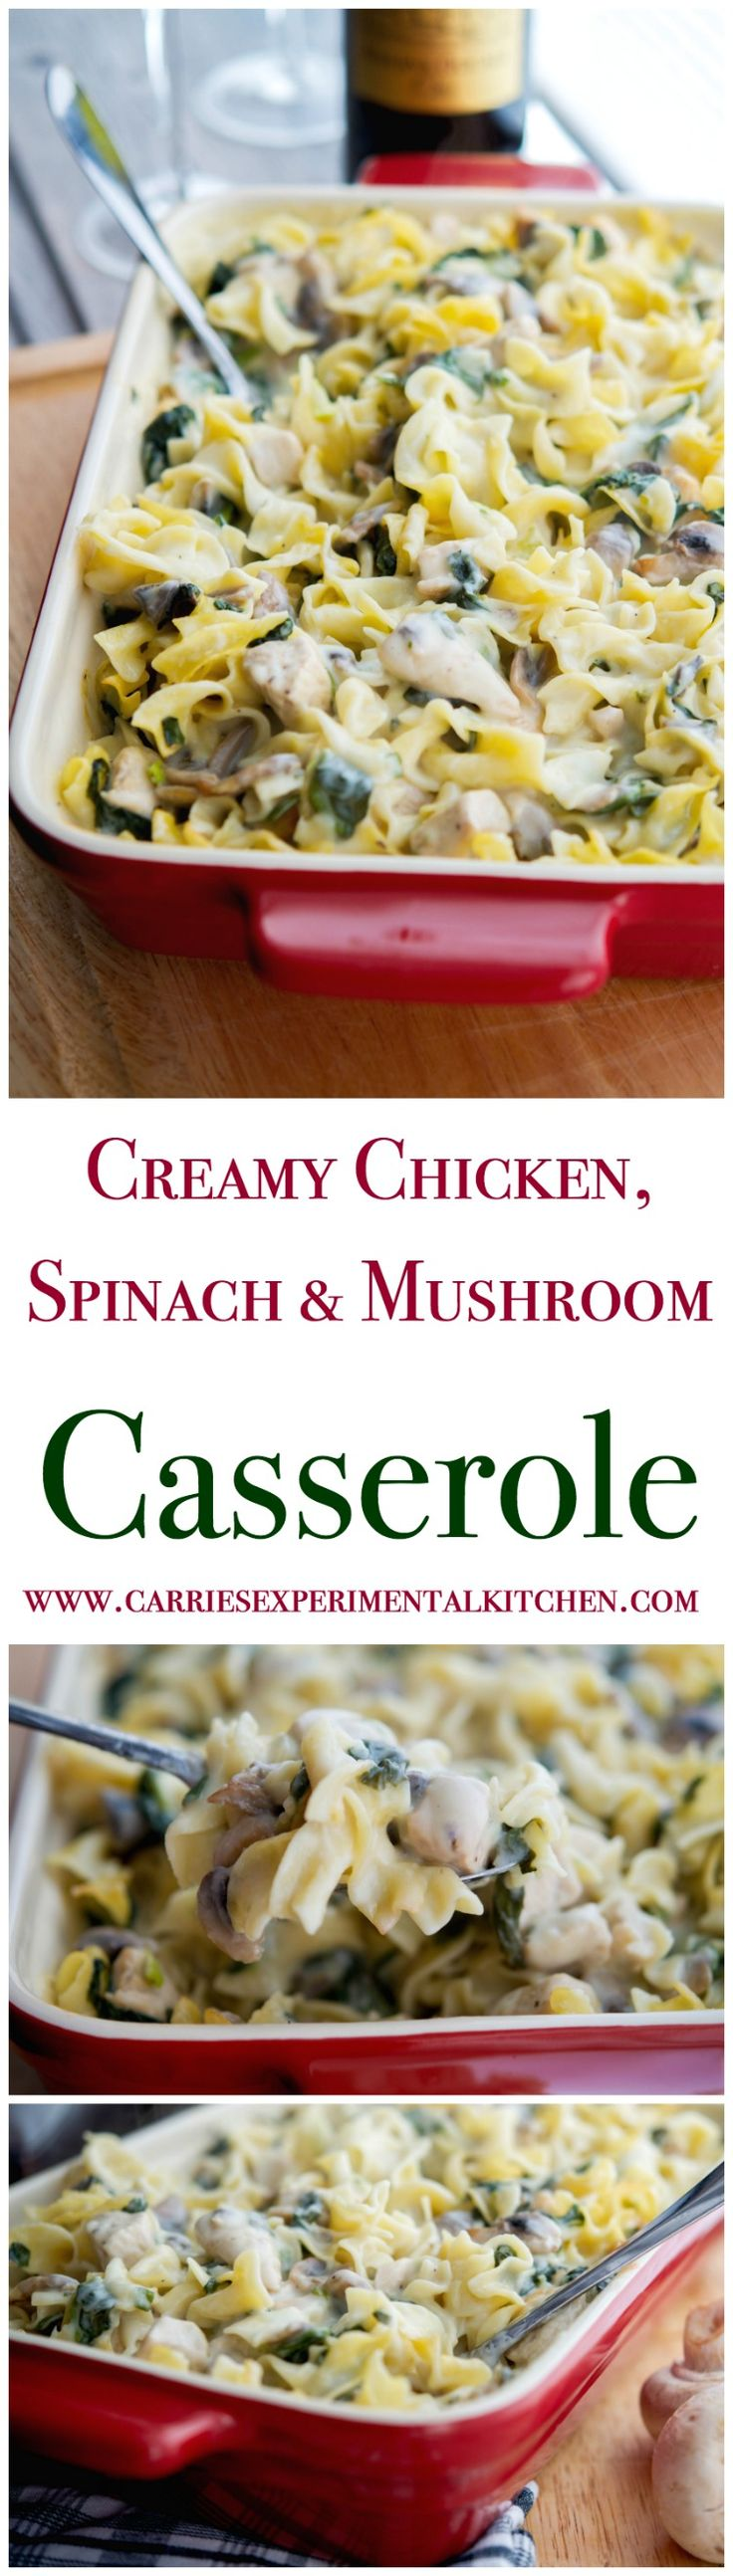 This Creamy Chicken, Spinach & Mushroom Casserole makes for the perfect weeknight meal. Prepare ahead of time and reheat for those busy weeknights too.